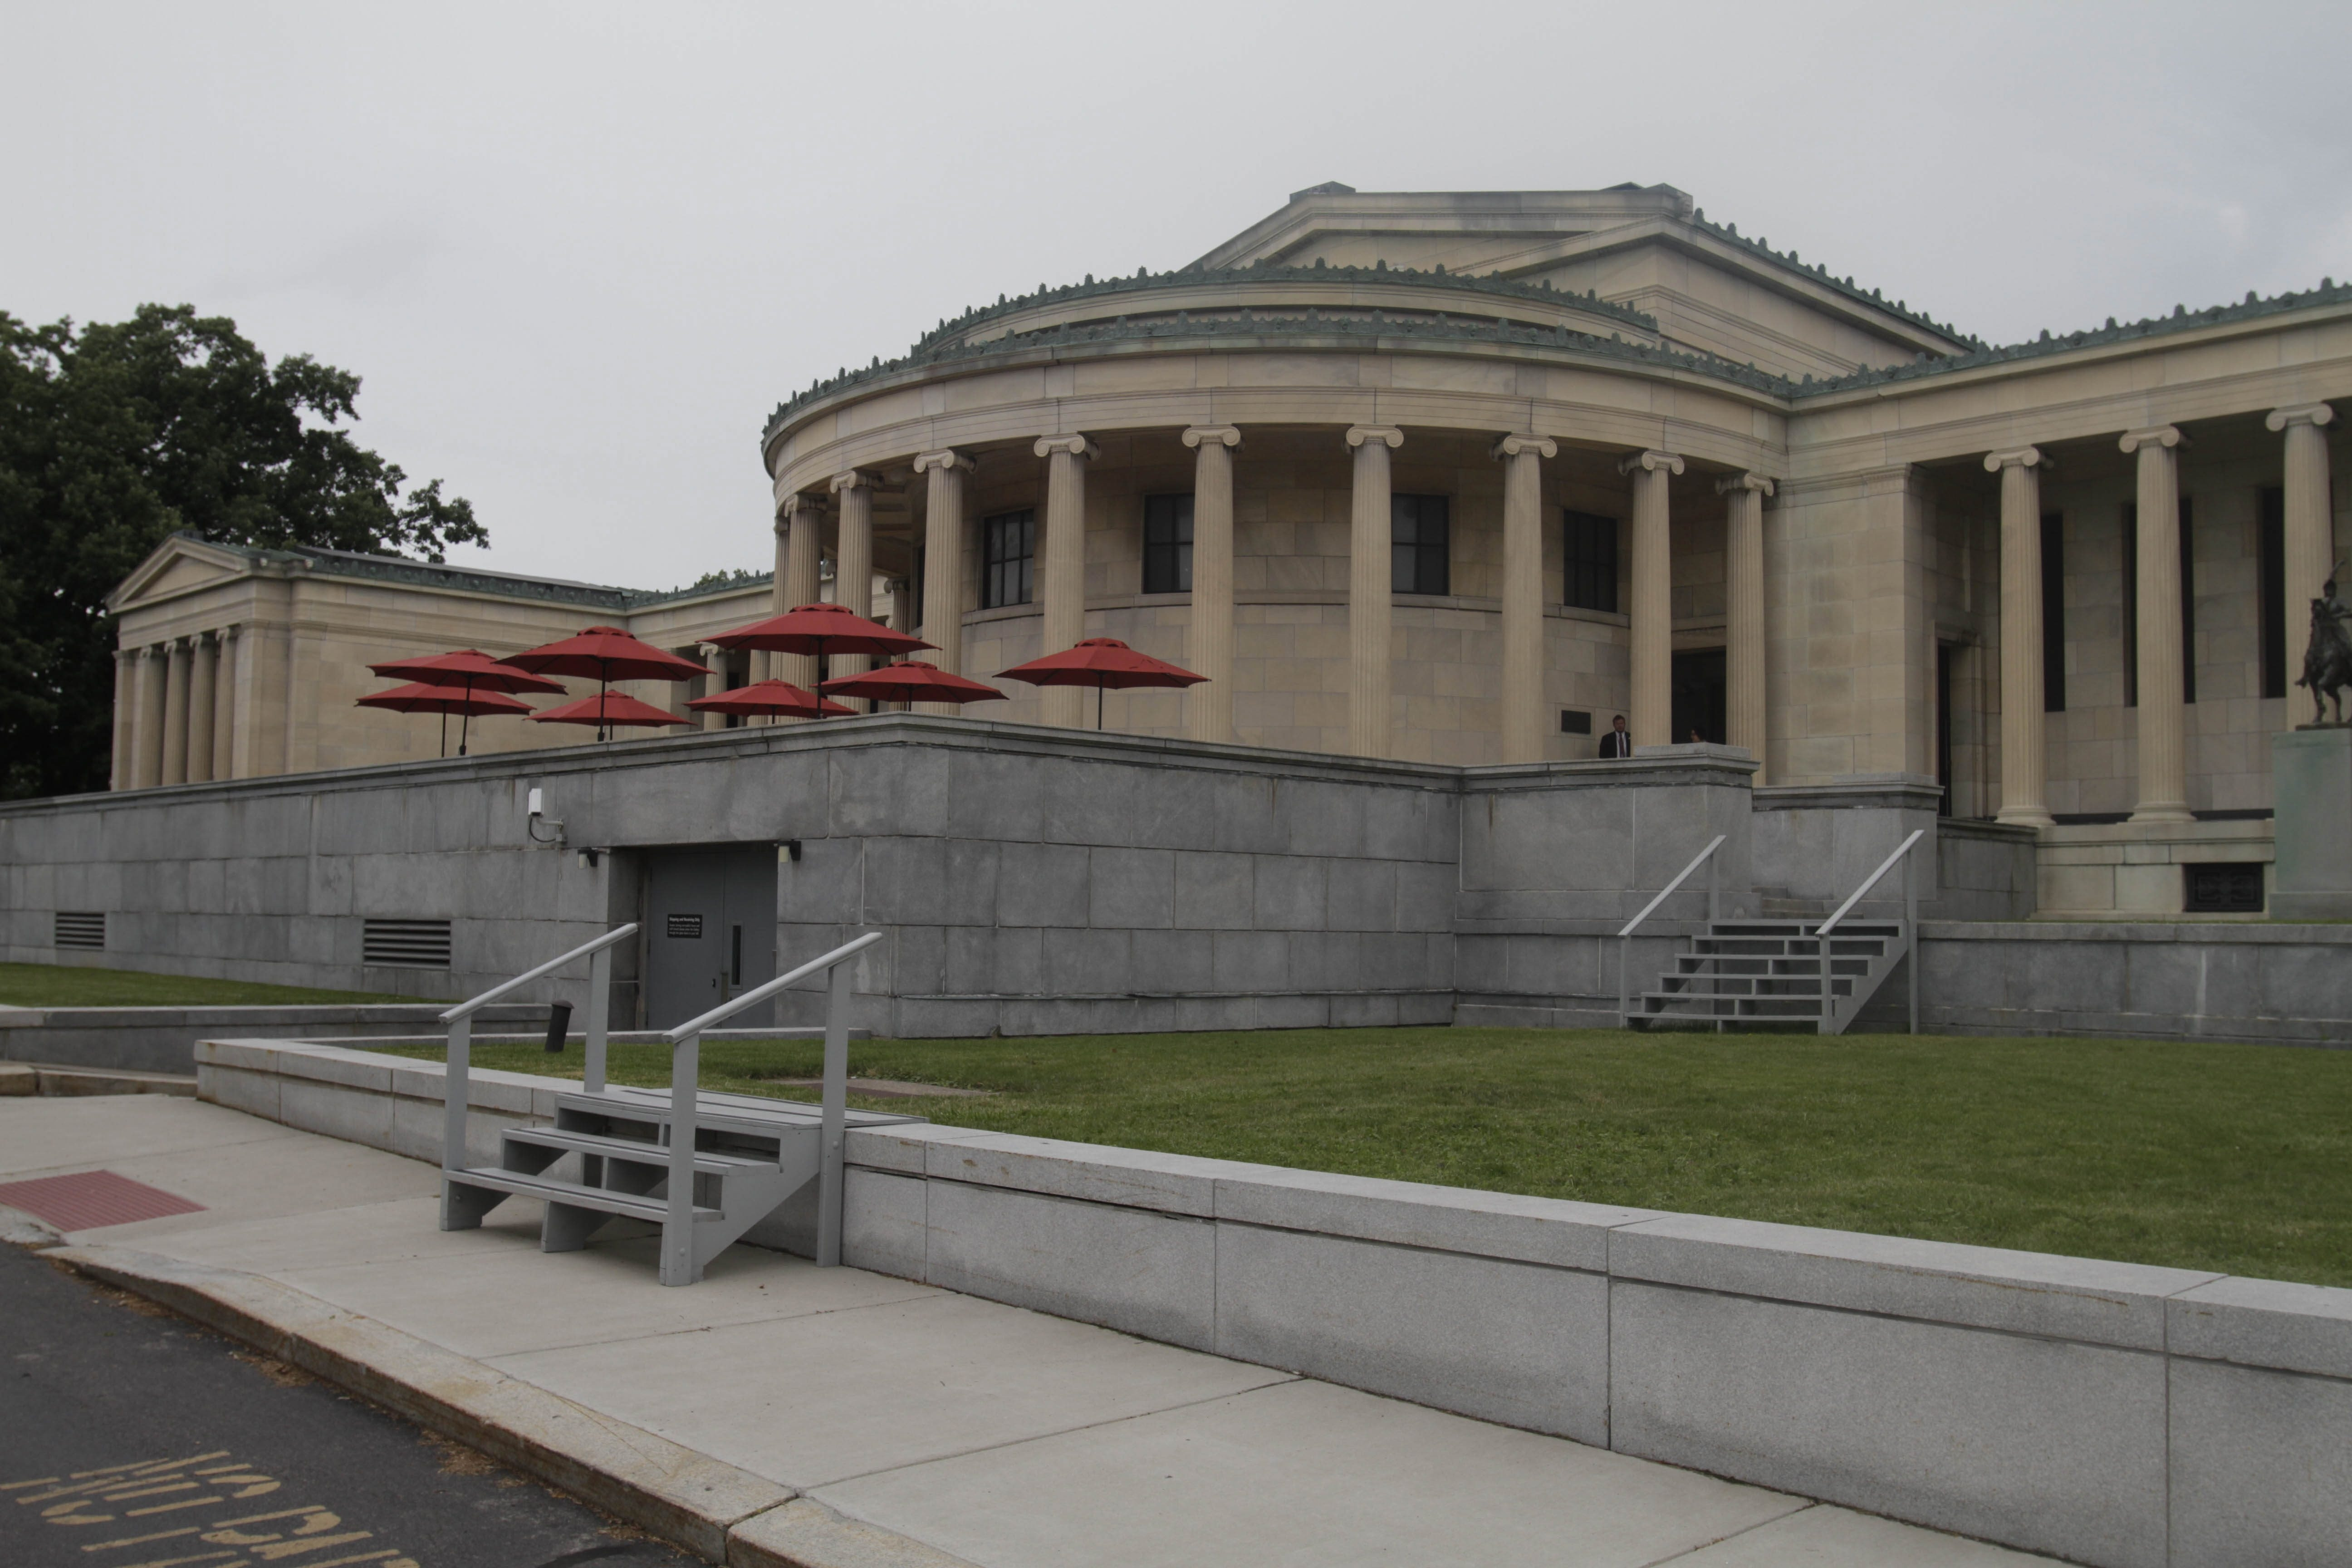 Albright-Knox visitors will have the opportunity to use a new museum entrance and enjoy a new outdoor cafÈ as well.  at  Albright Knox Art Gallery in Buffalo, N.Y. on Wednesday, July 2, 2014 in Buffalo, N.Y.  (John Hickey/Buffalo News)